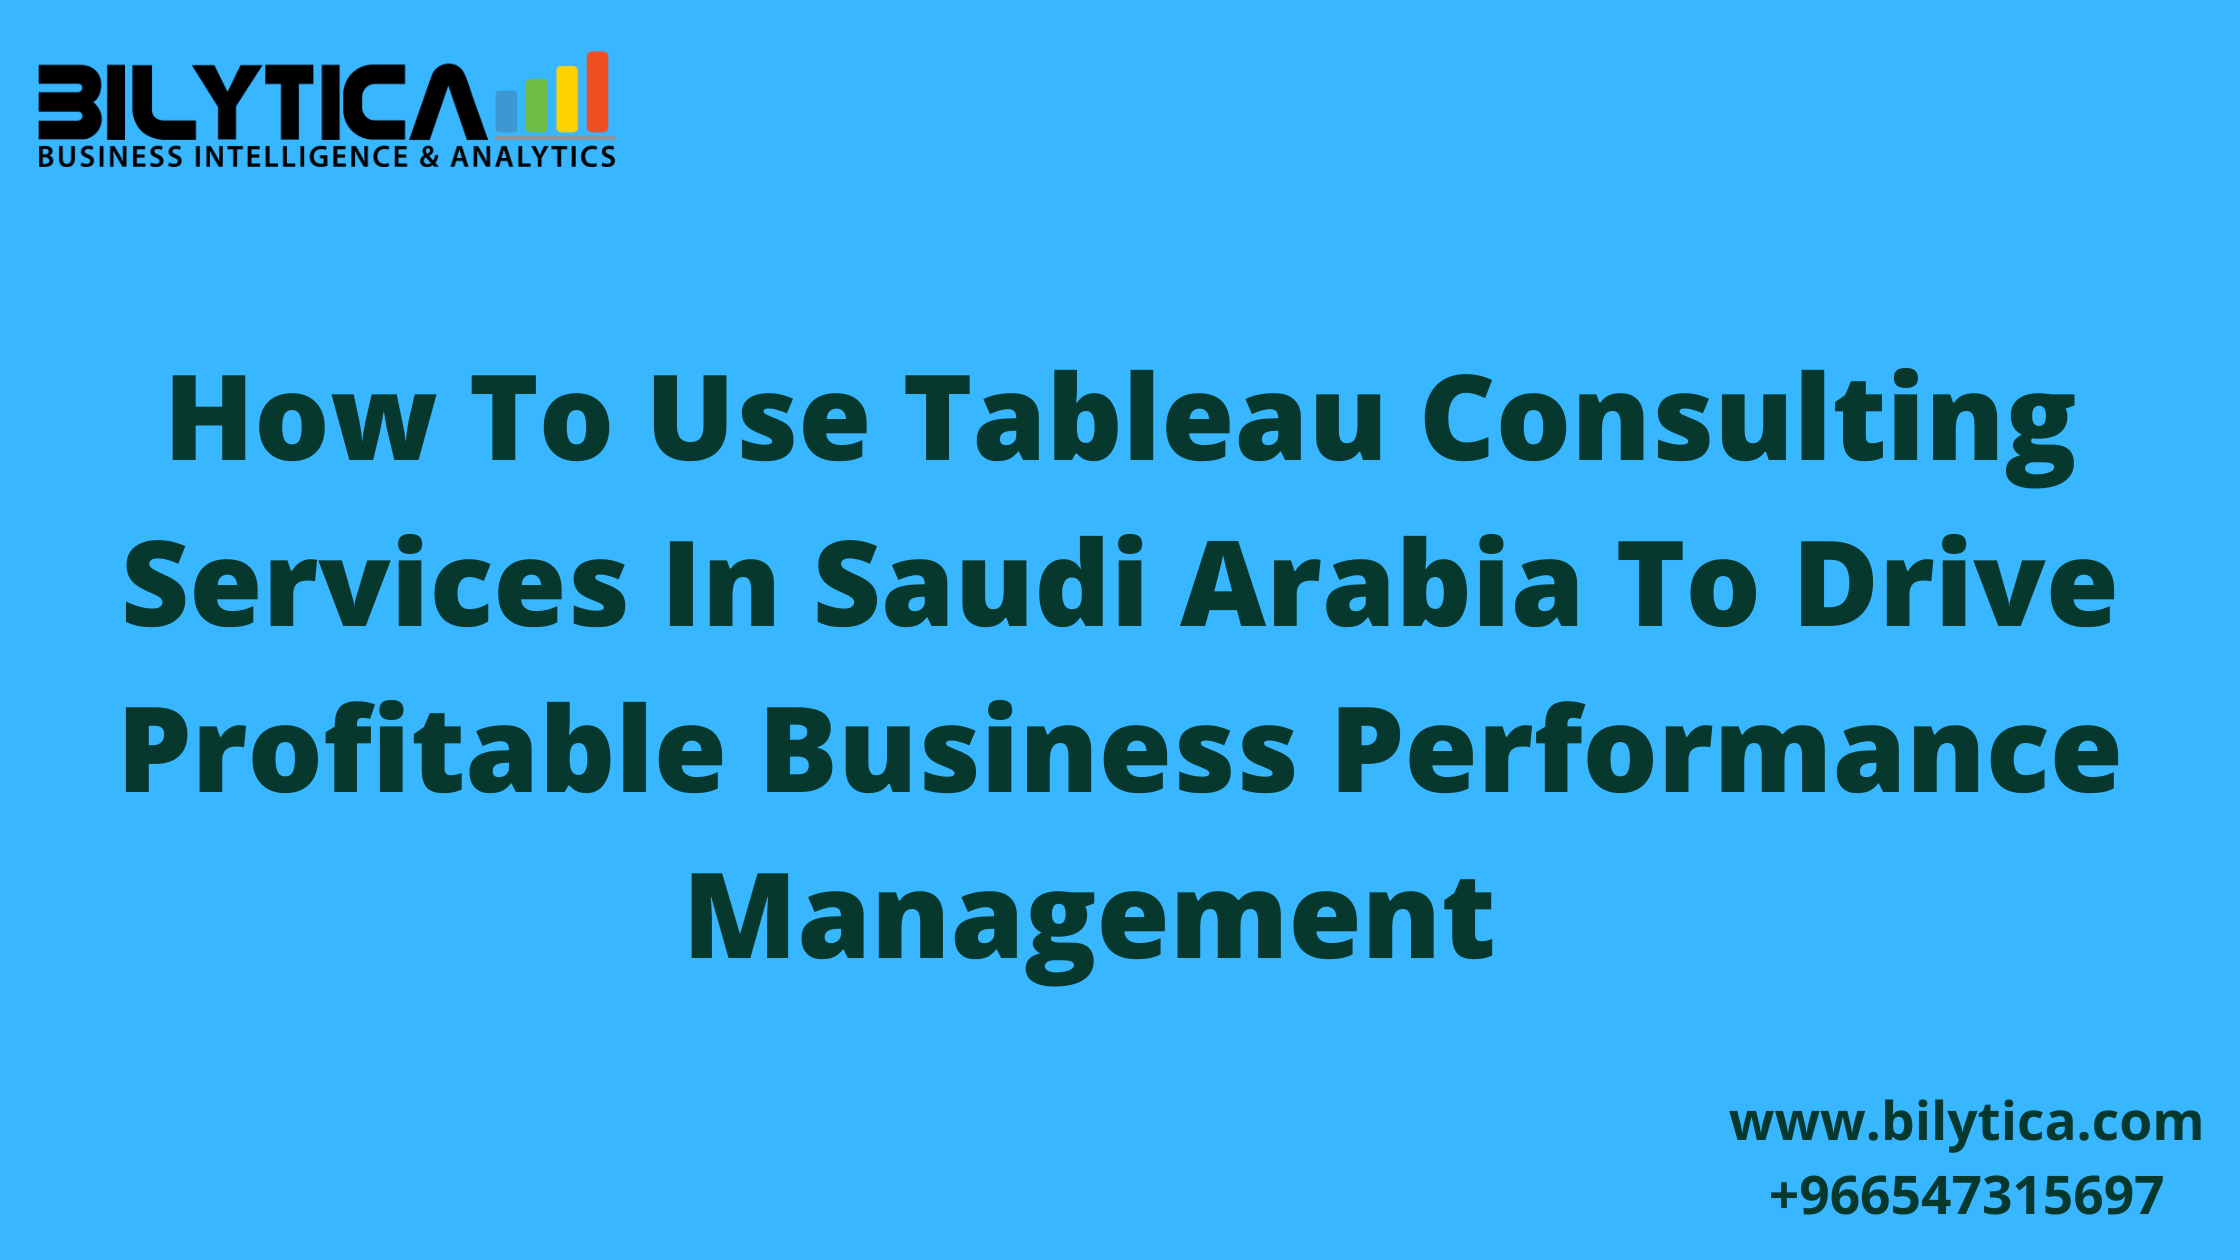 How To Use Tableau Consulting Services In Saudi Arabia To Drive Profitable Business Performance Management